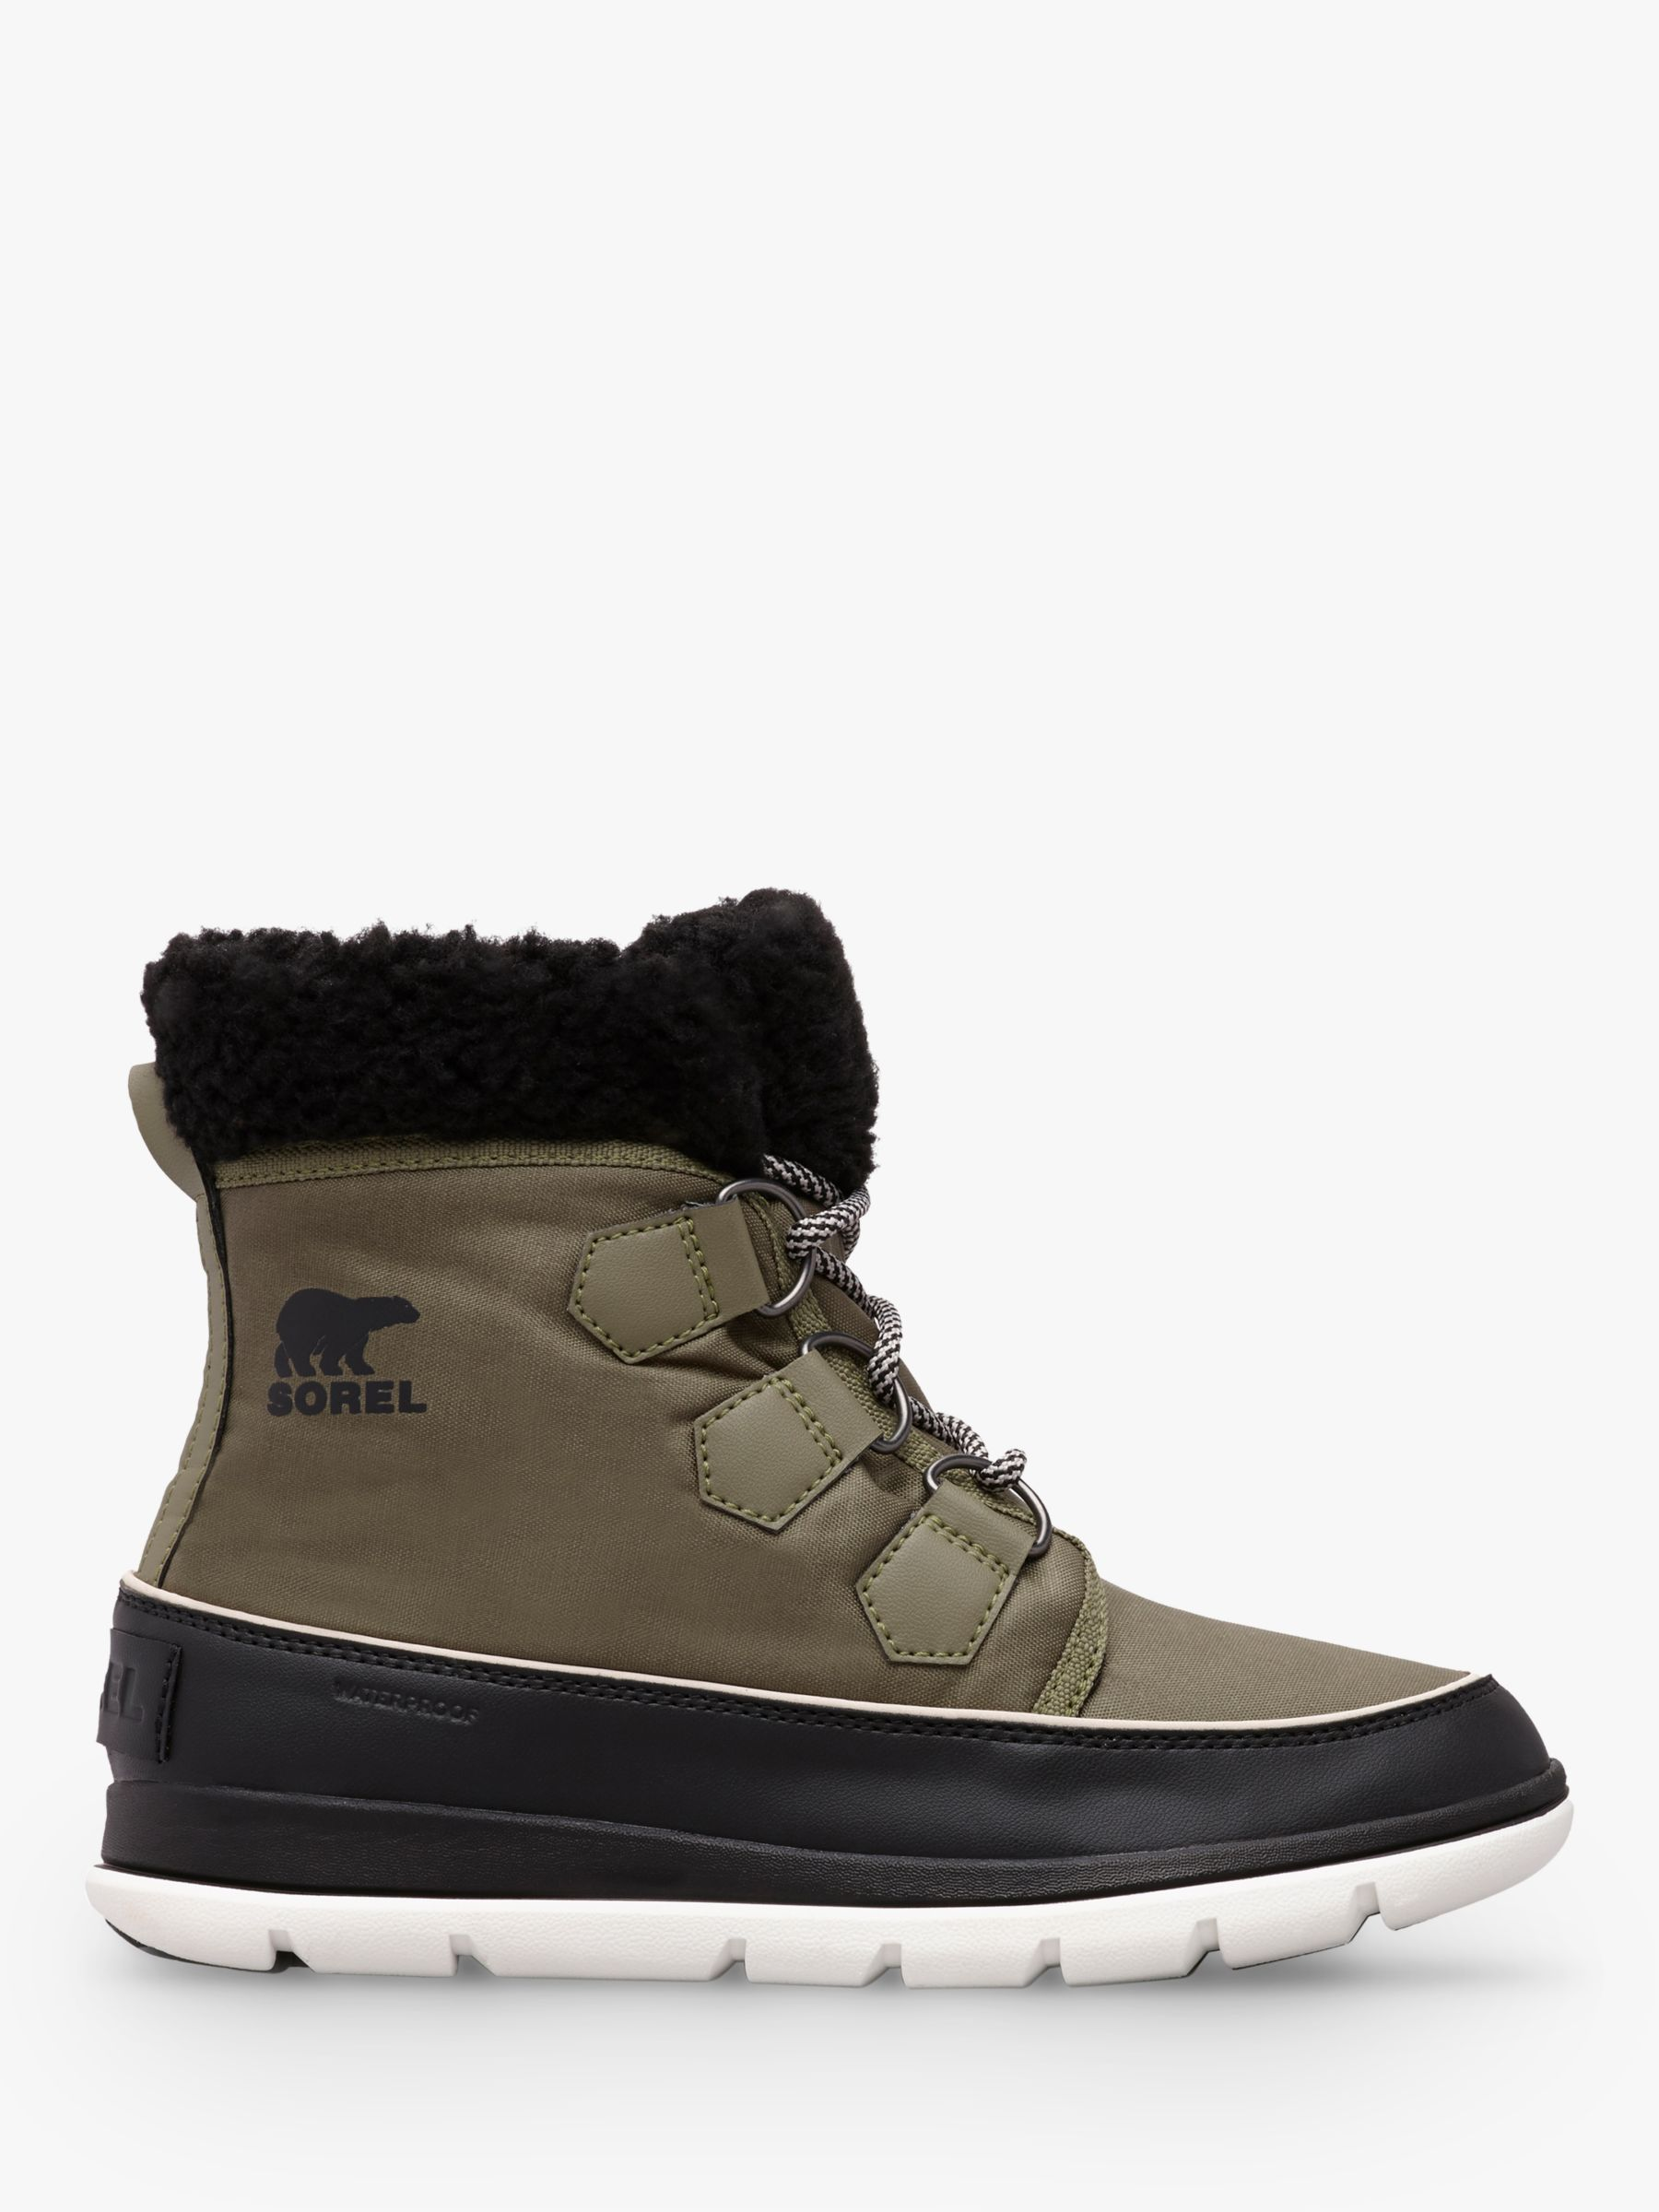 Sorel Sorel Carnival Lace Up Ankle Snow Boots, Green